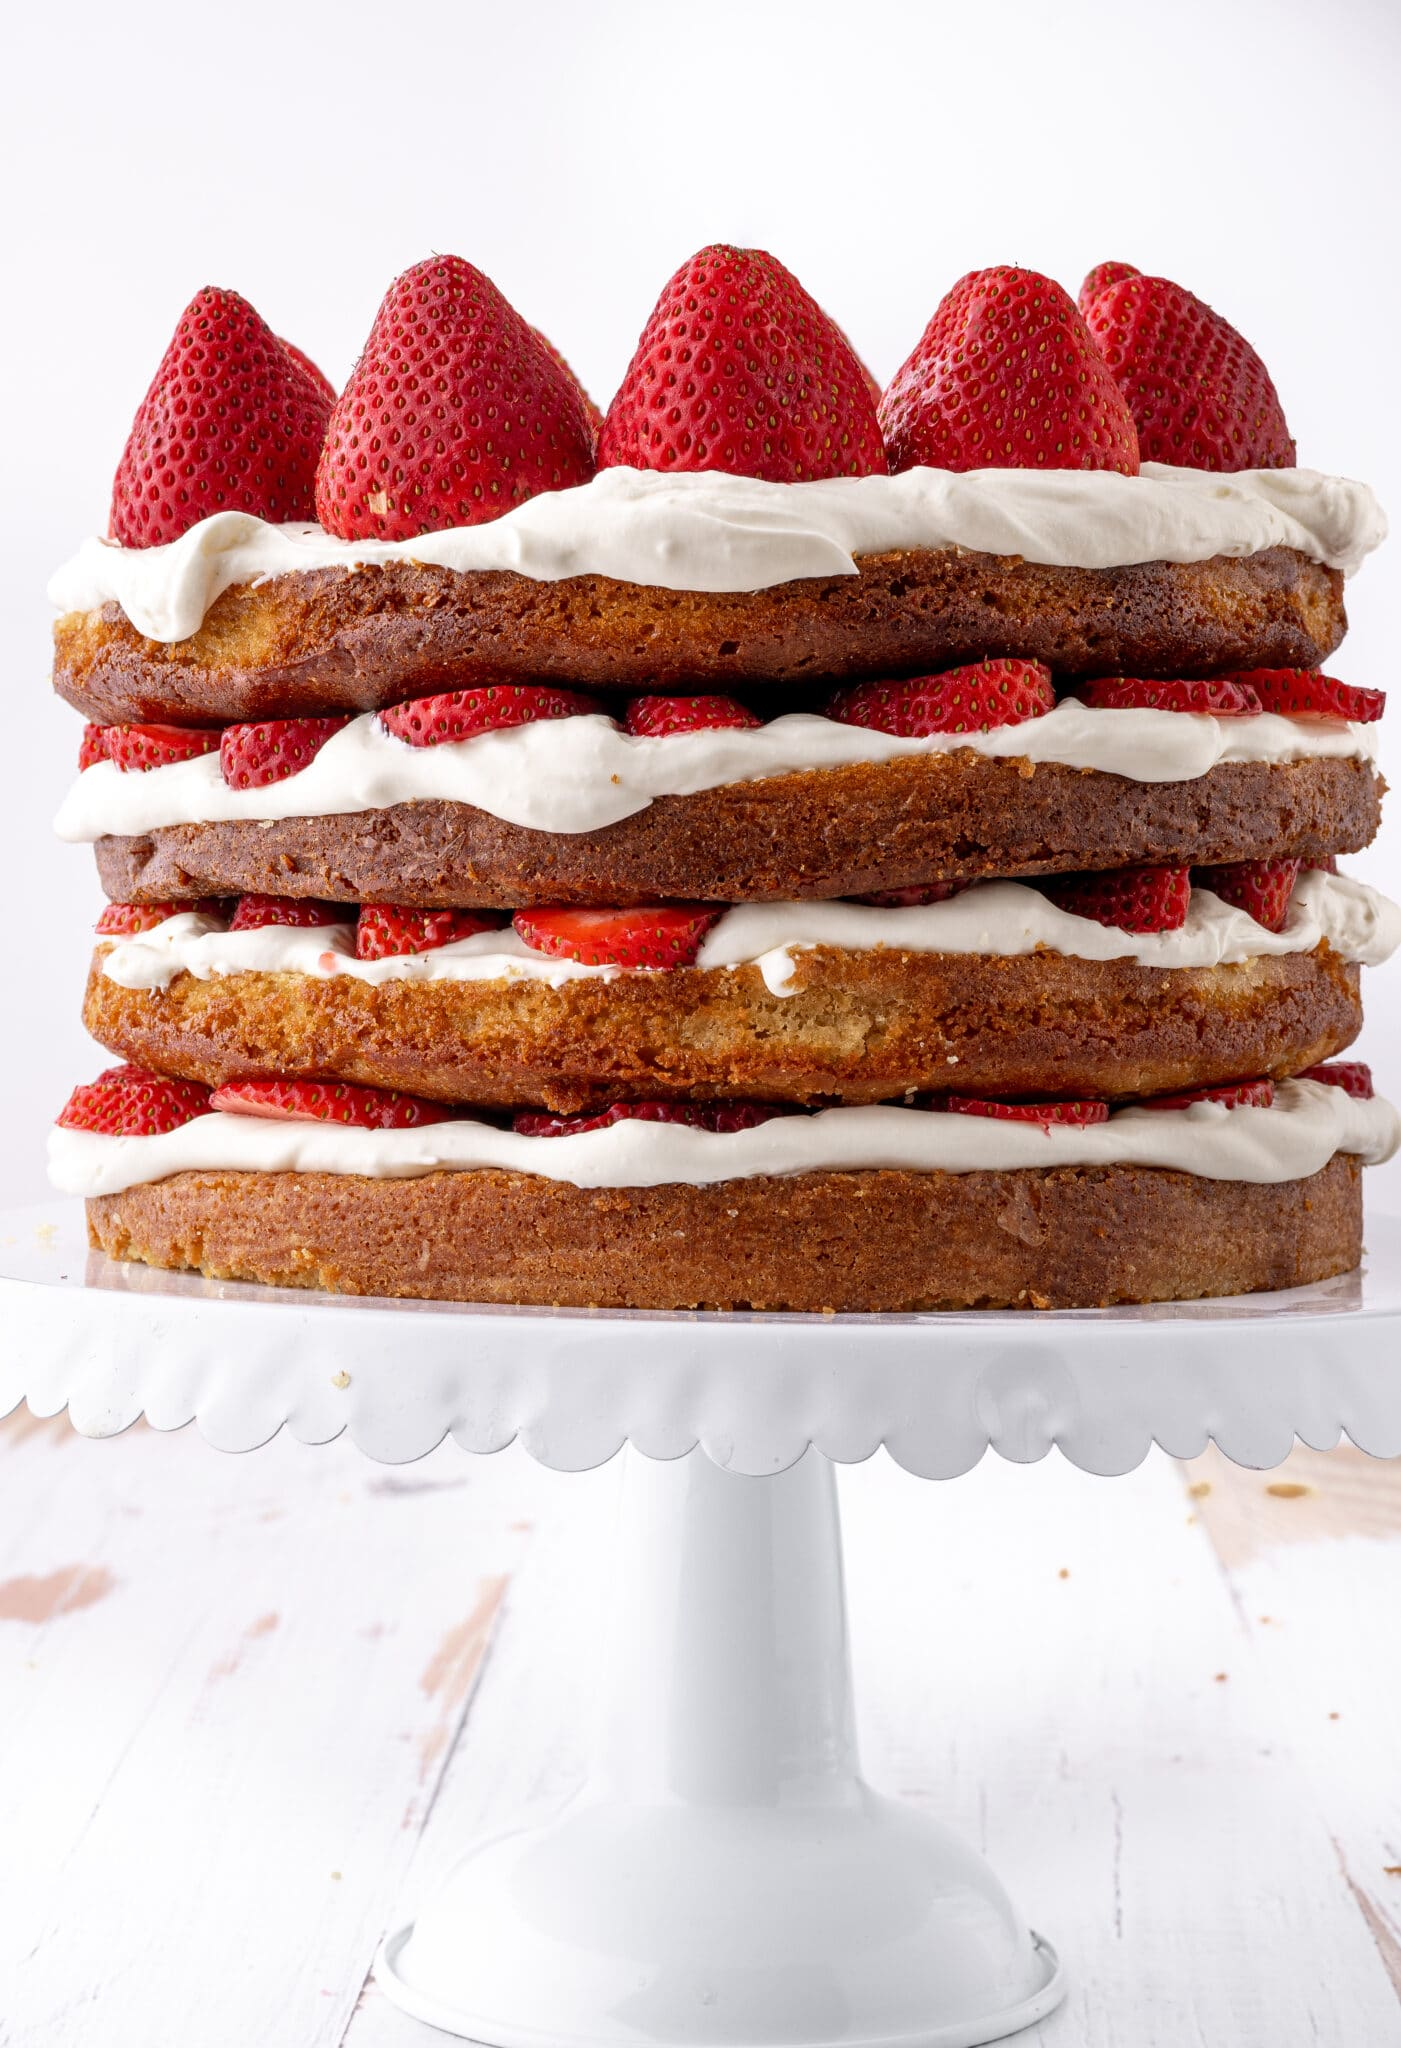 A four layer low carb strawberry shortcake  sliced with fresh strawberries and whipped cream on a white ruffled cake stand.